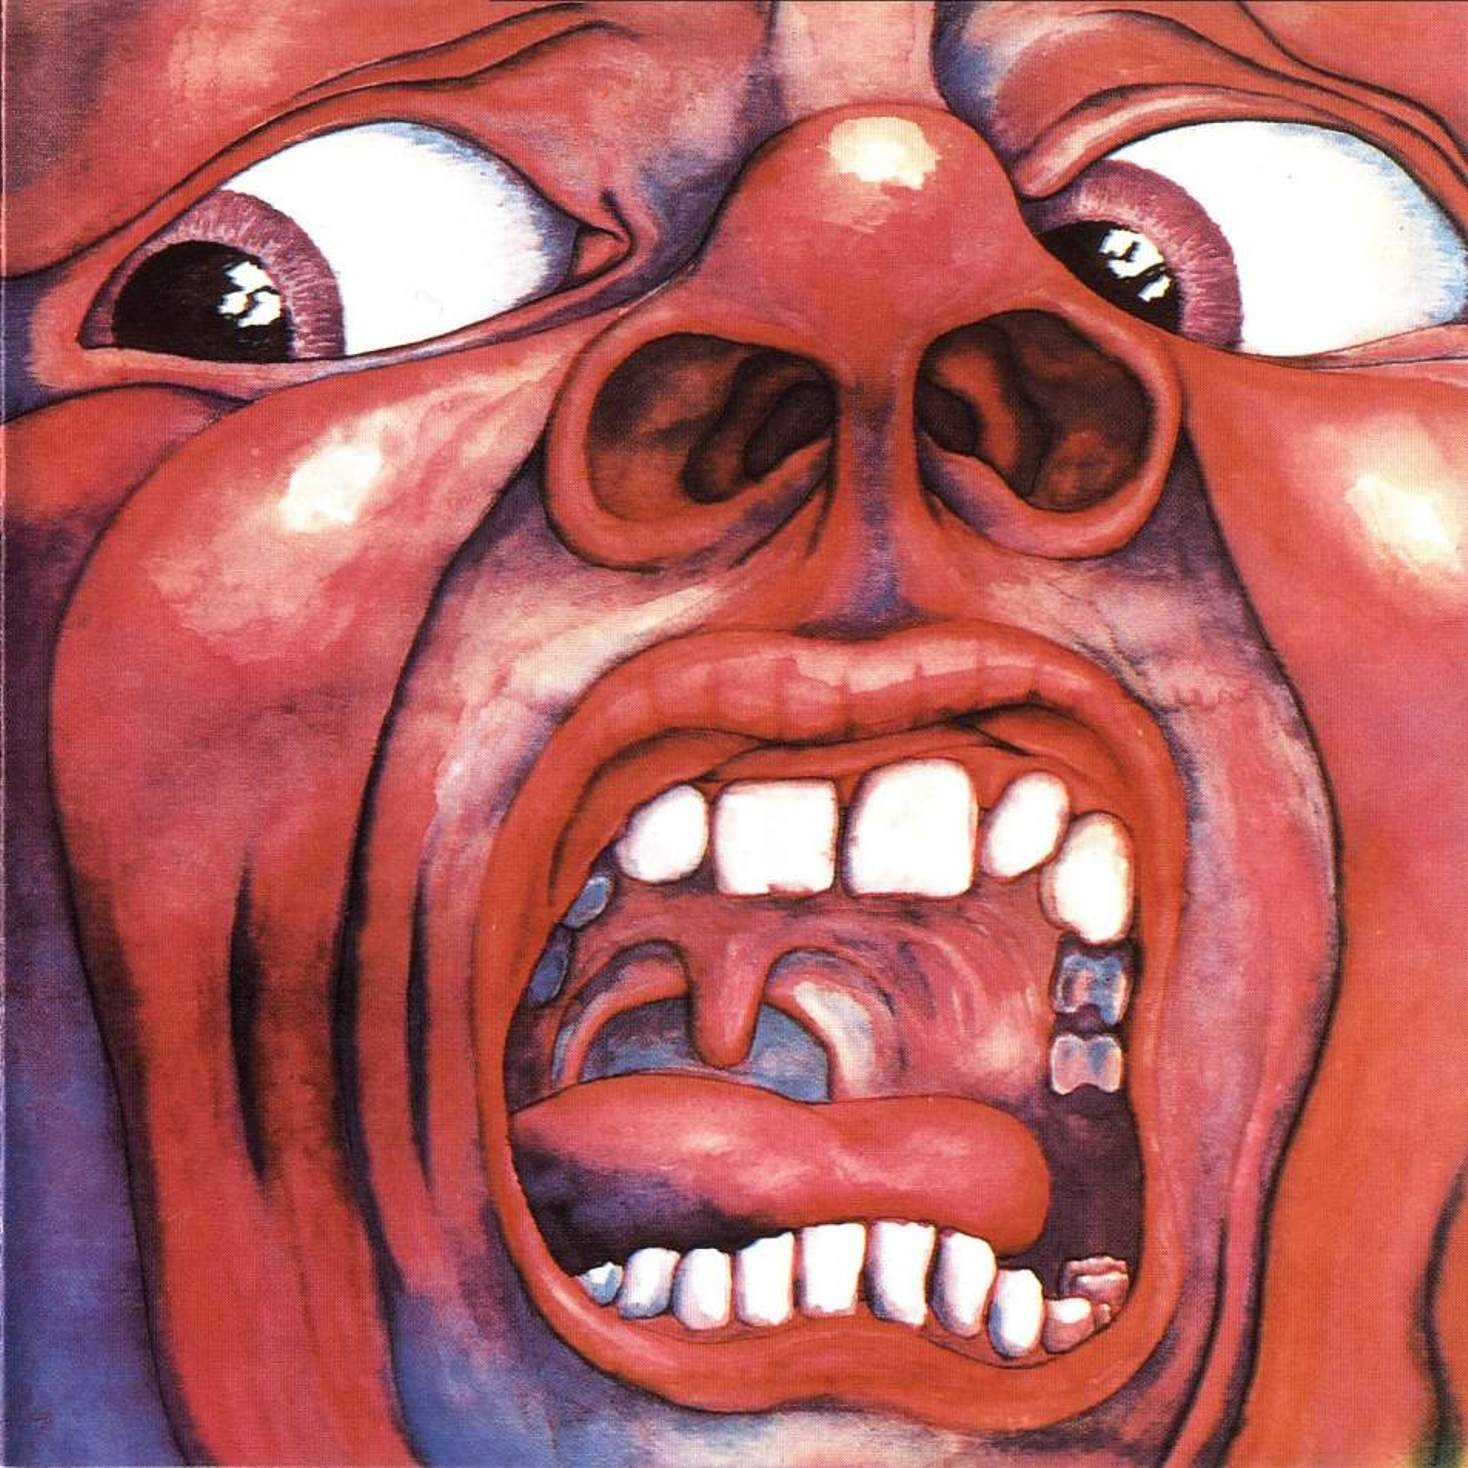 http://3.bp.blogspot.com/-VOAqotRQbzw/T1qJHPBy1gI/AAAAAAAACn4/LeAhSV0l0lk/s1600/King_Crimson_-_In_The_Court_Of_The_Crimson_King_-_Front.jpg